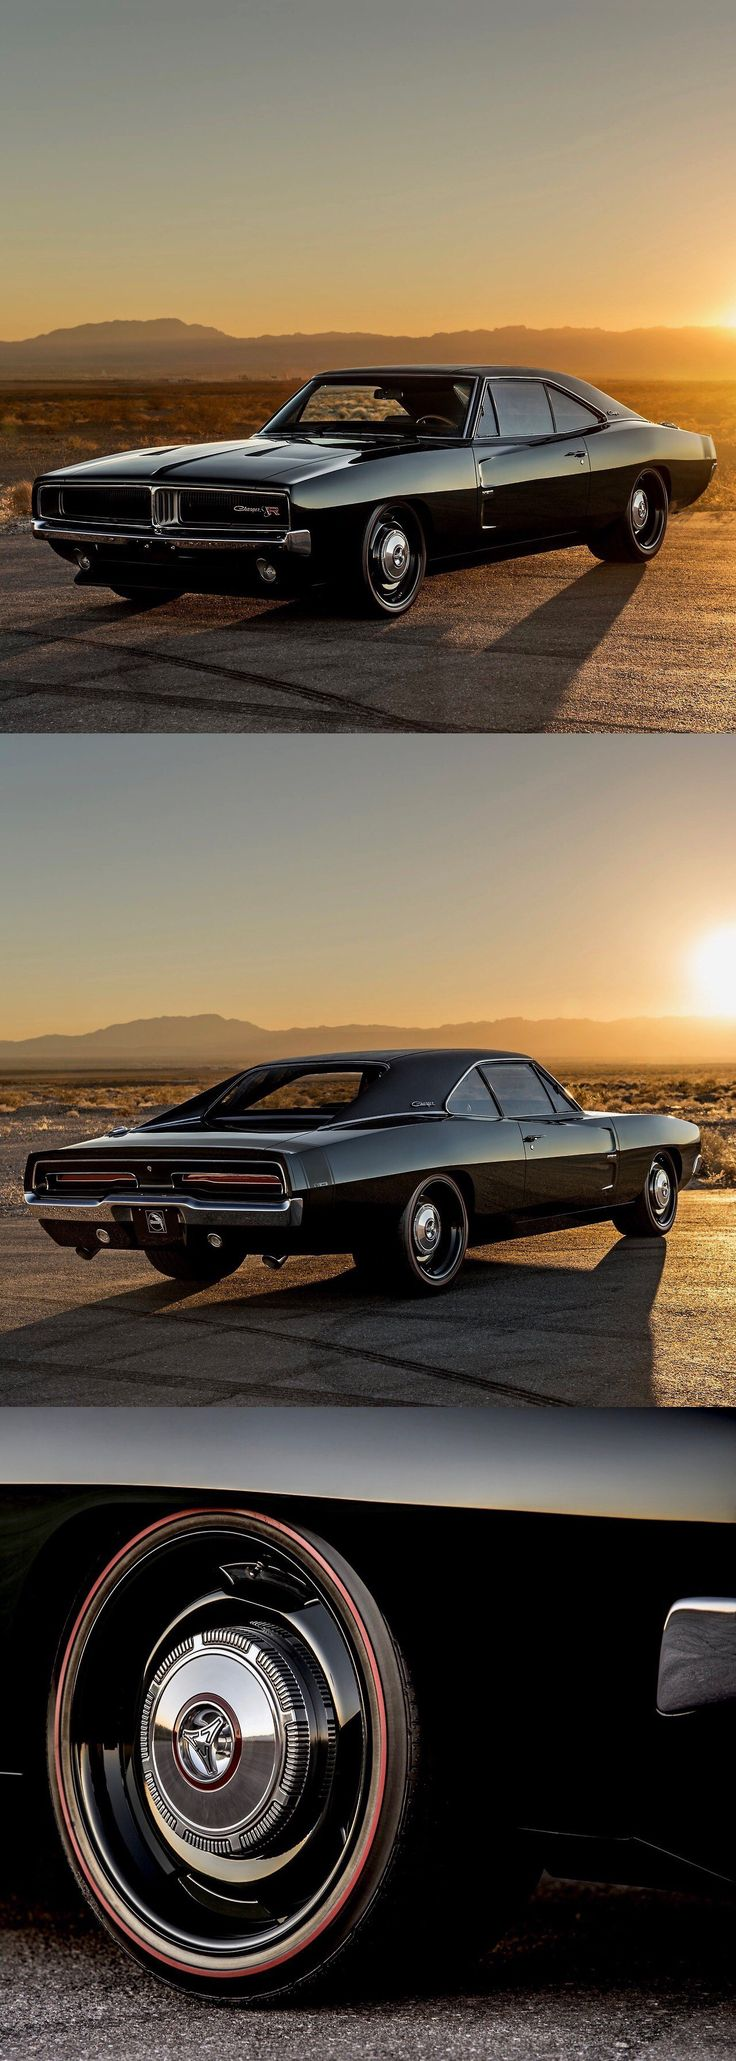 69 Charger: 789 Best Sweet MOPARS! Images On Pinterest